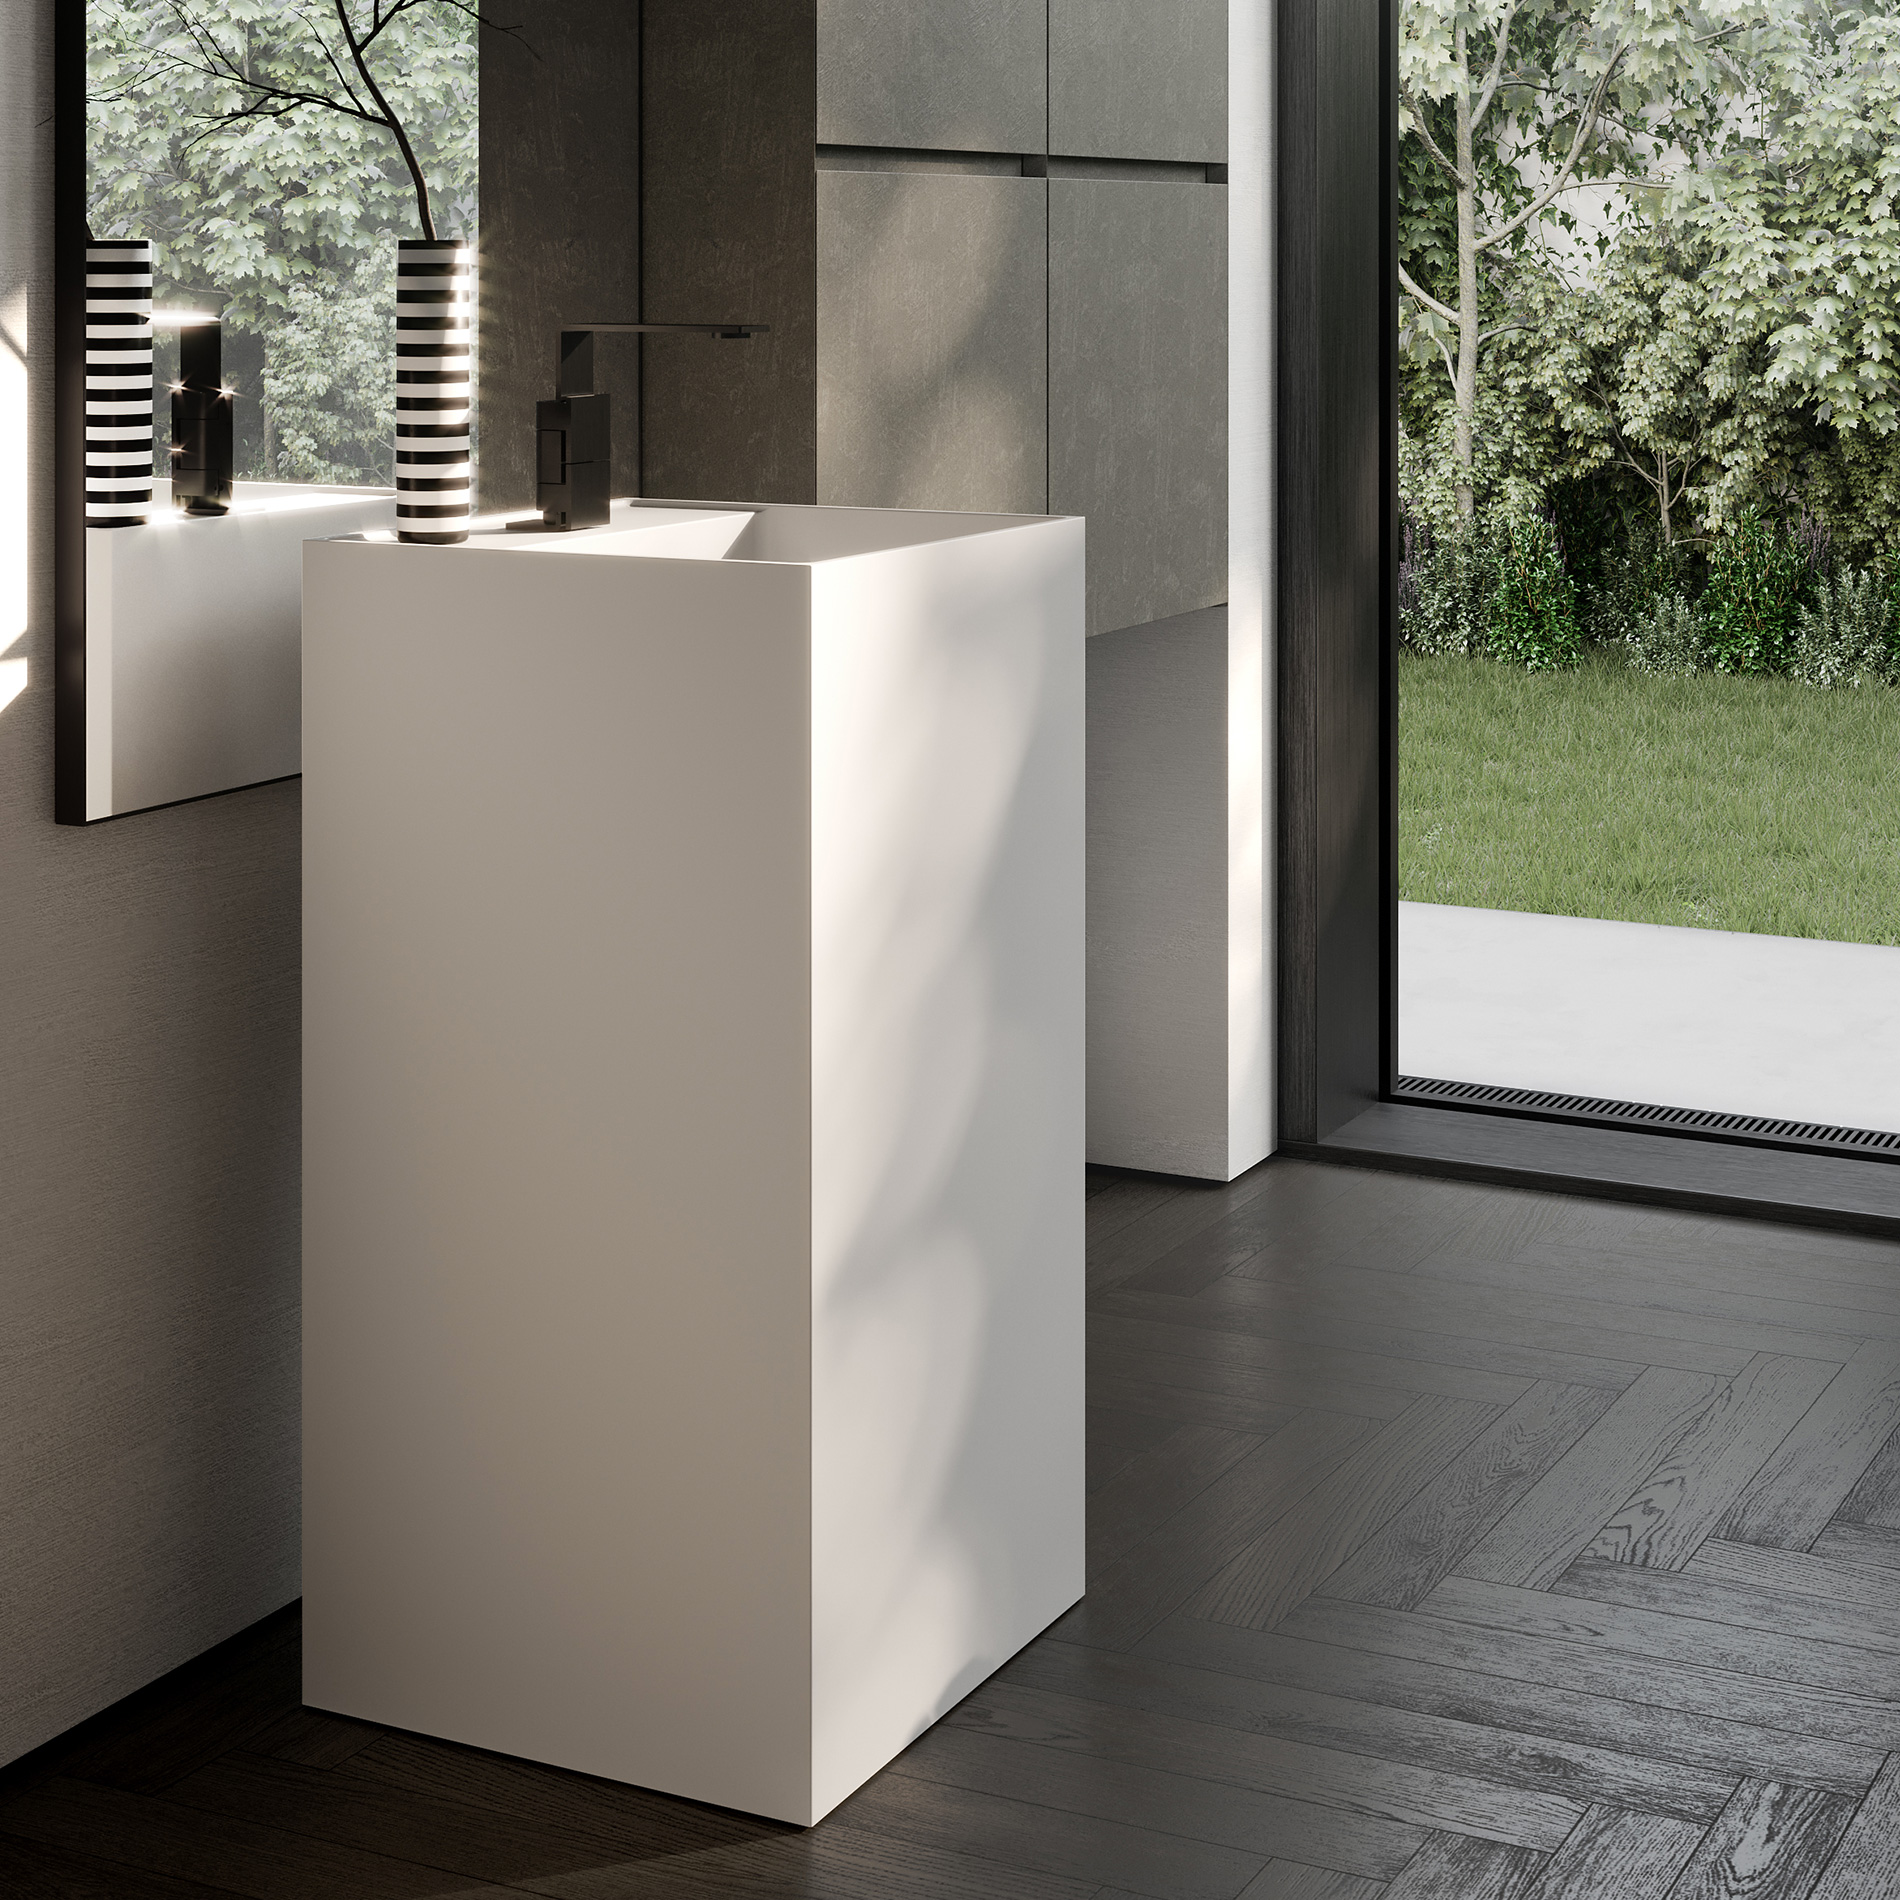 Nicos-International-home-products-Idea-Group-washbasins-1